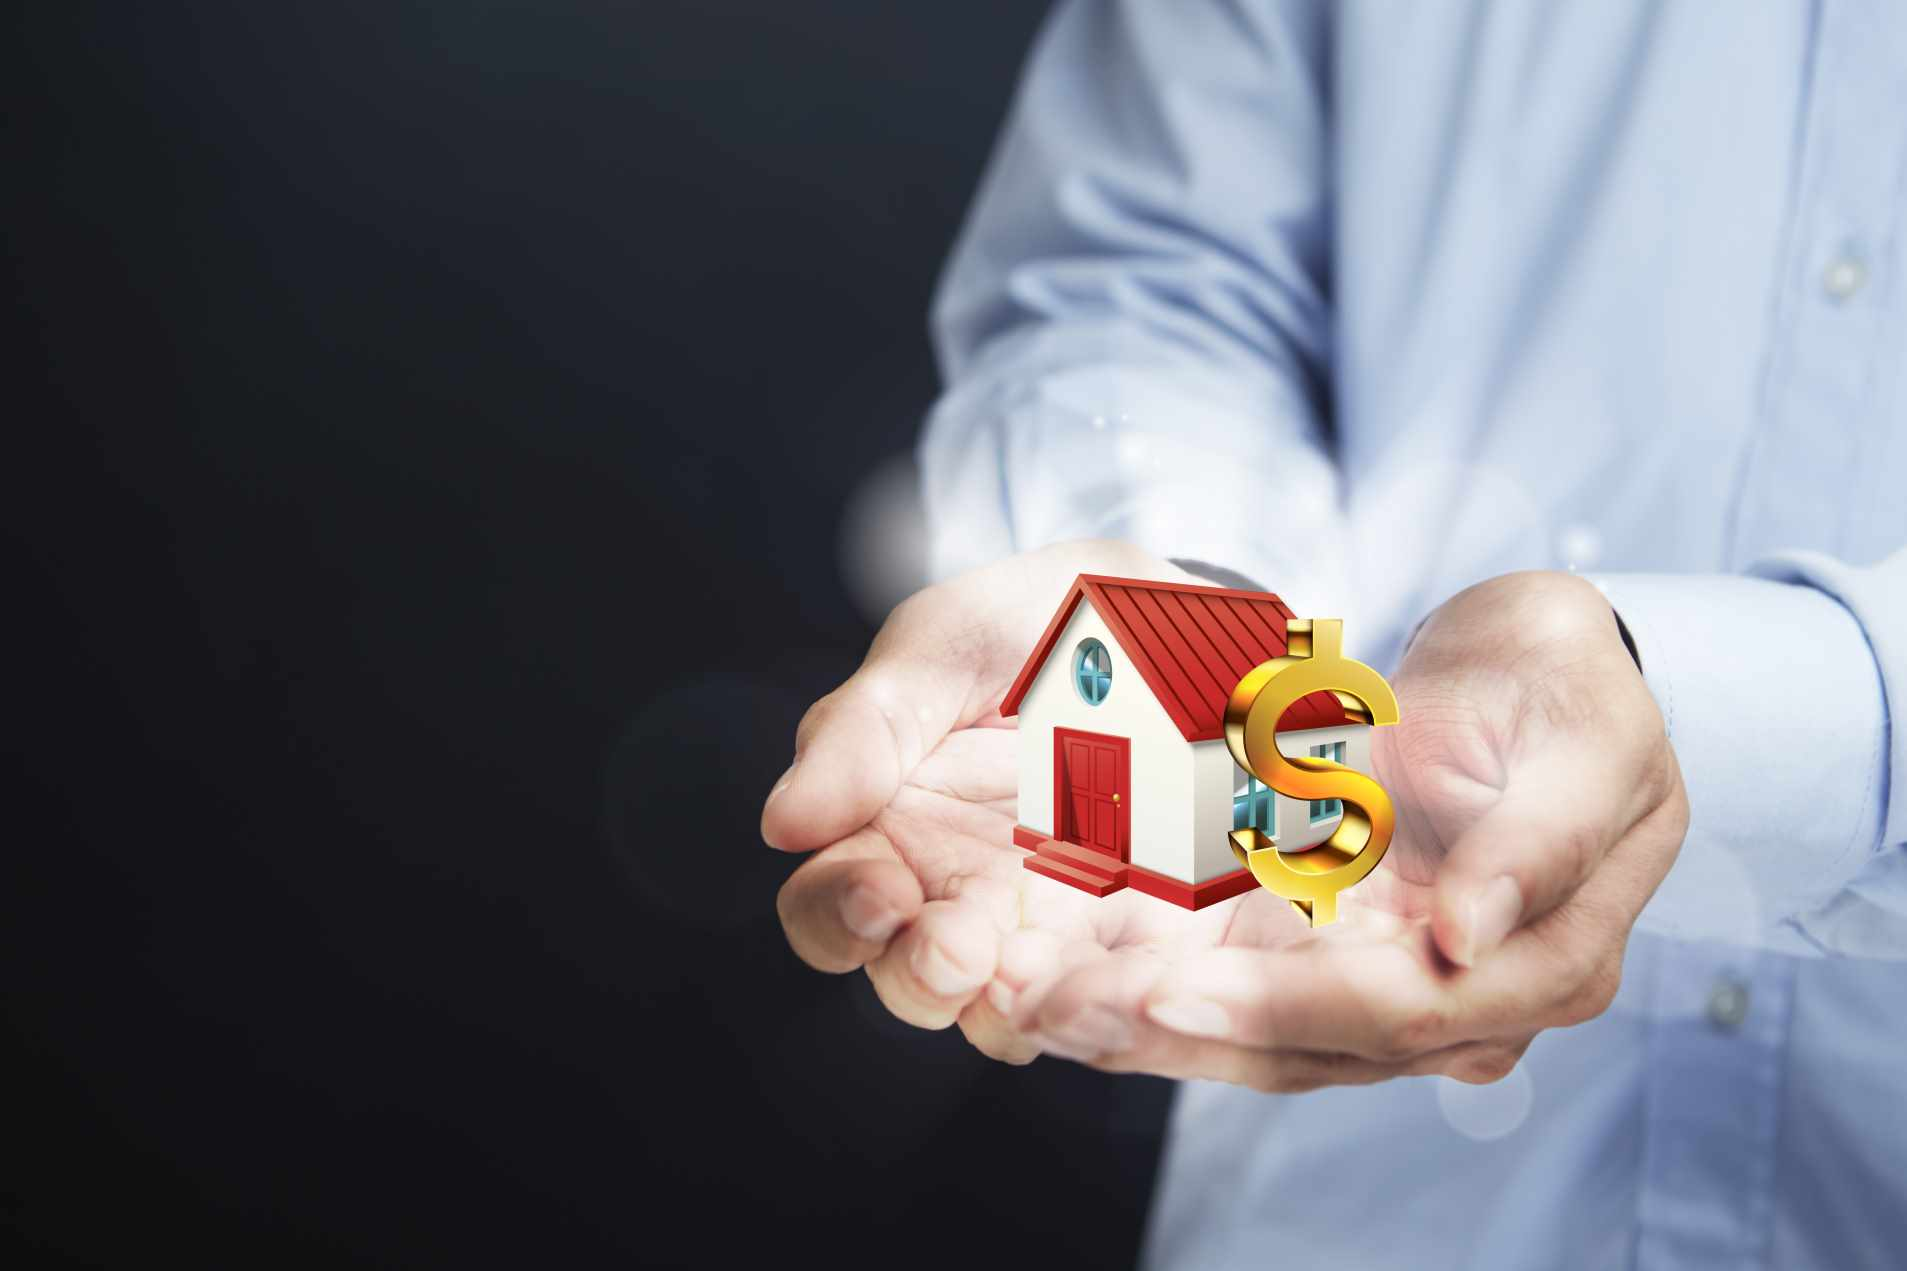 The property manager helps provide a complete management service